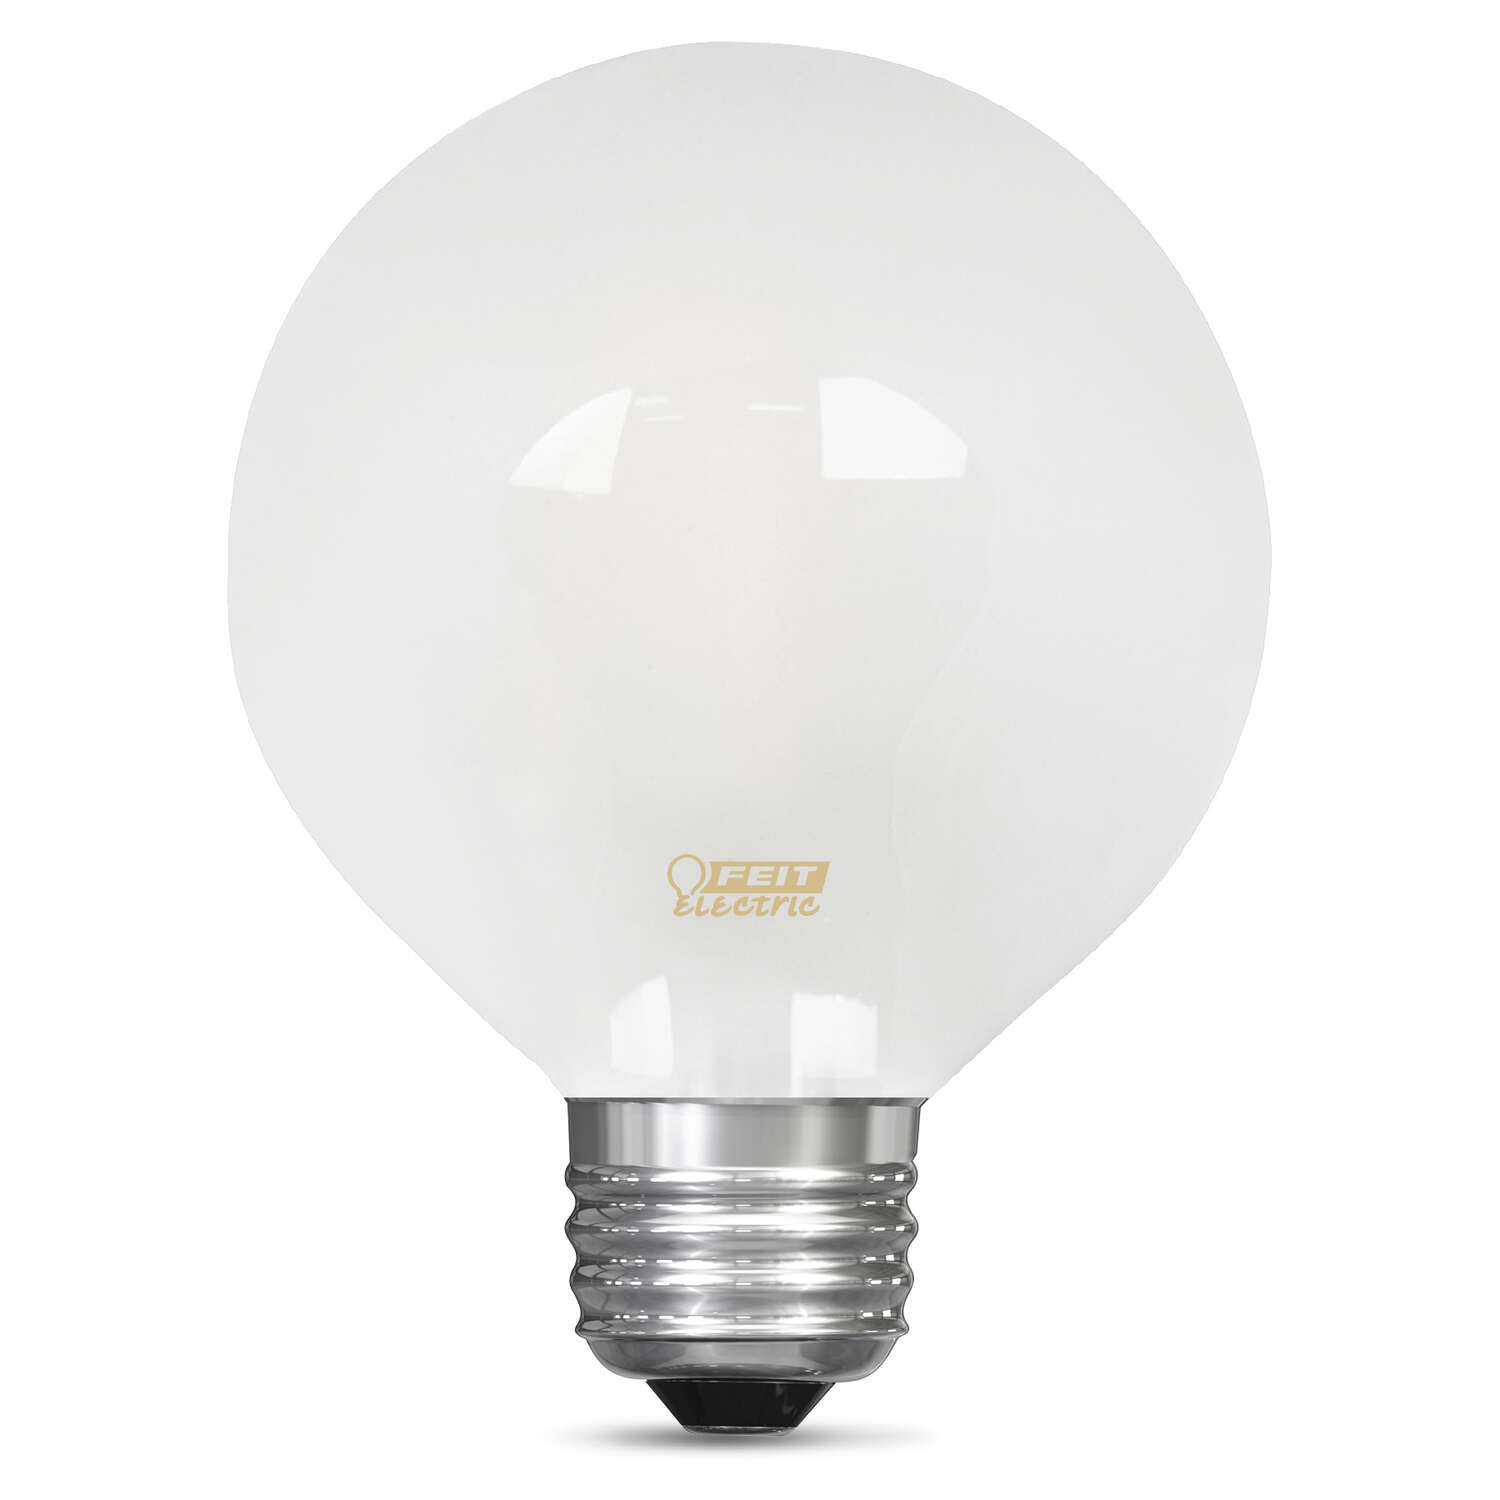 FEIT Electric  4.5 watts G25  LED Bulb  300 lumens Soft White  40 Watt Equivalence Globe